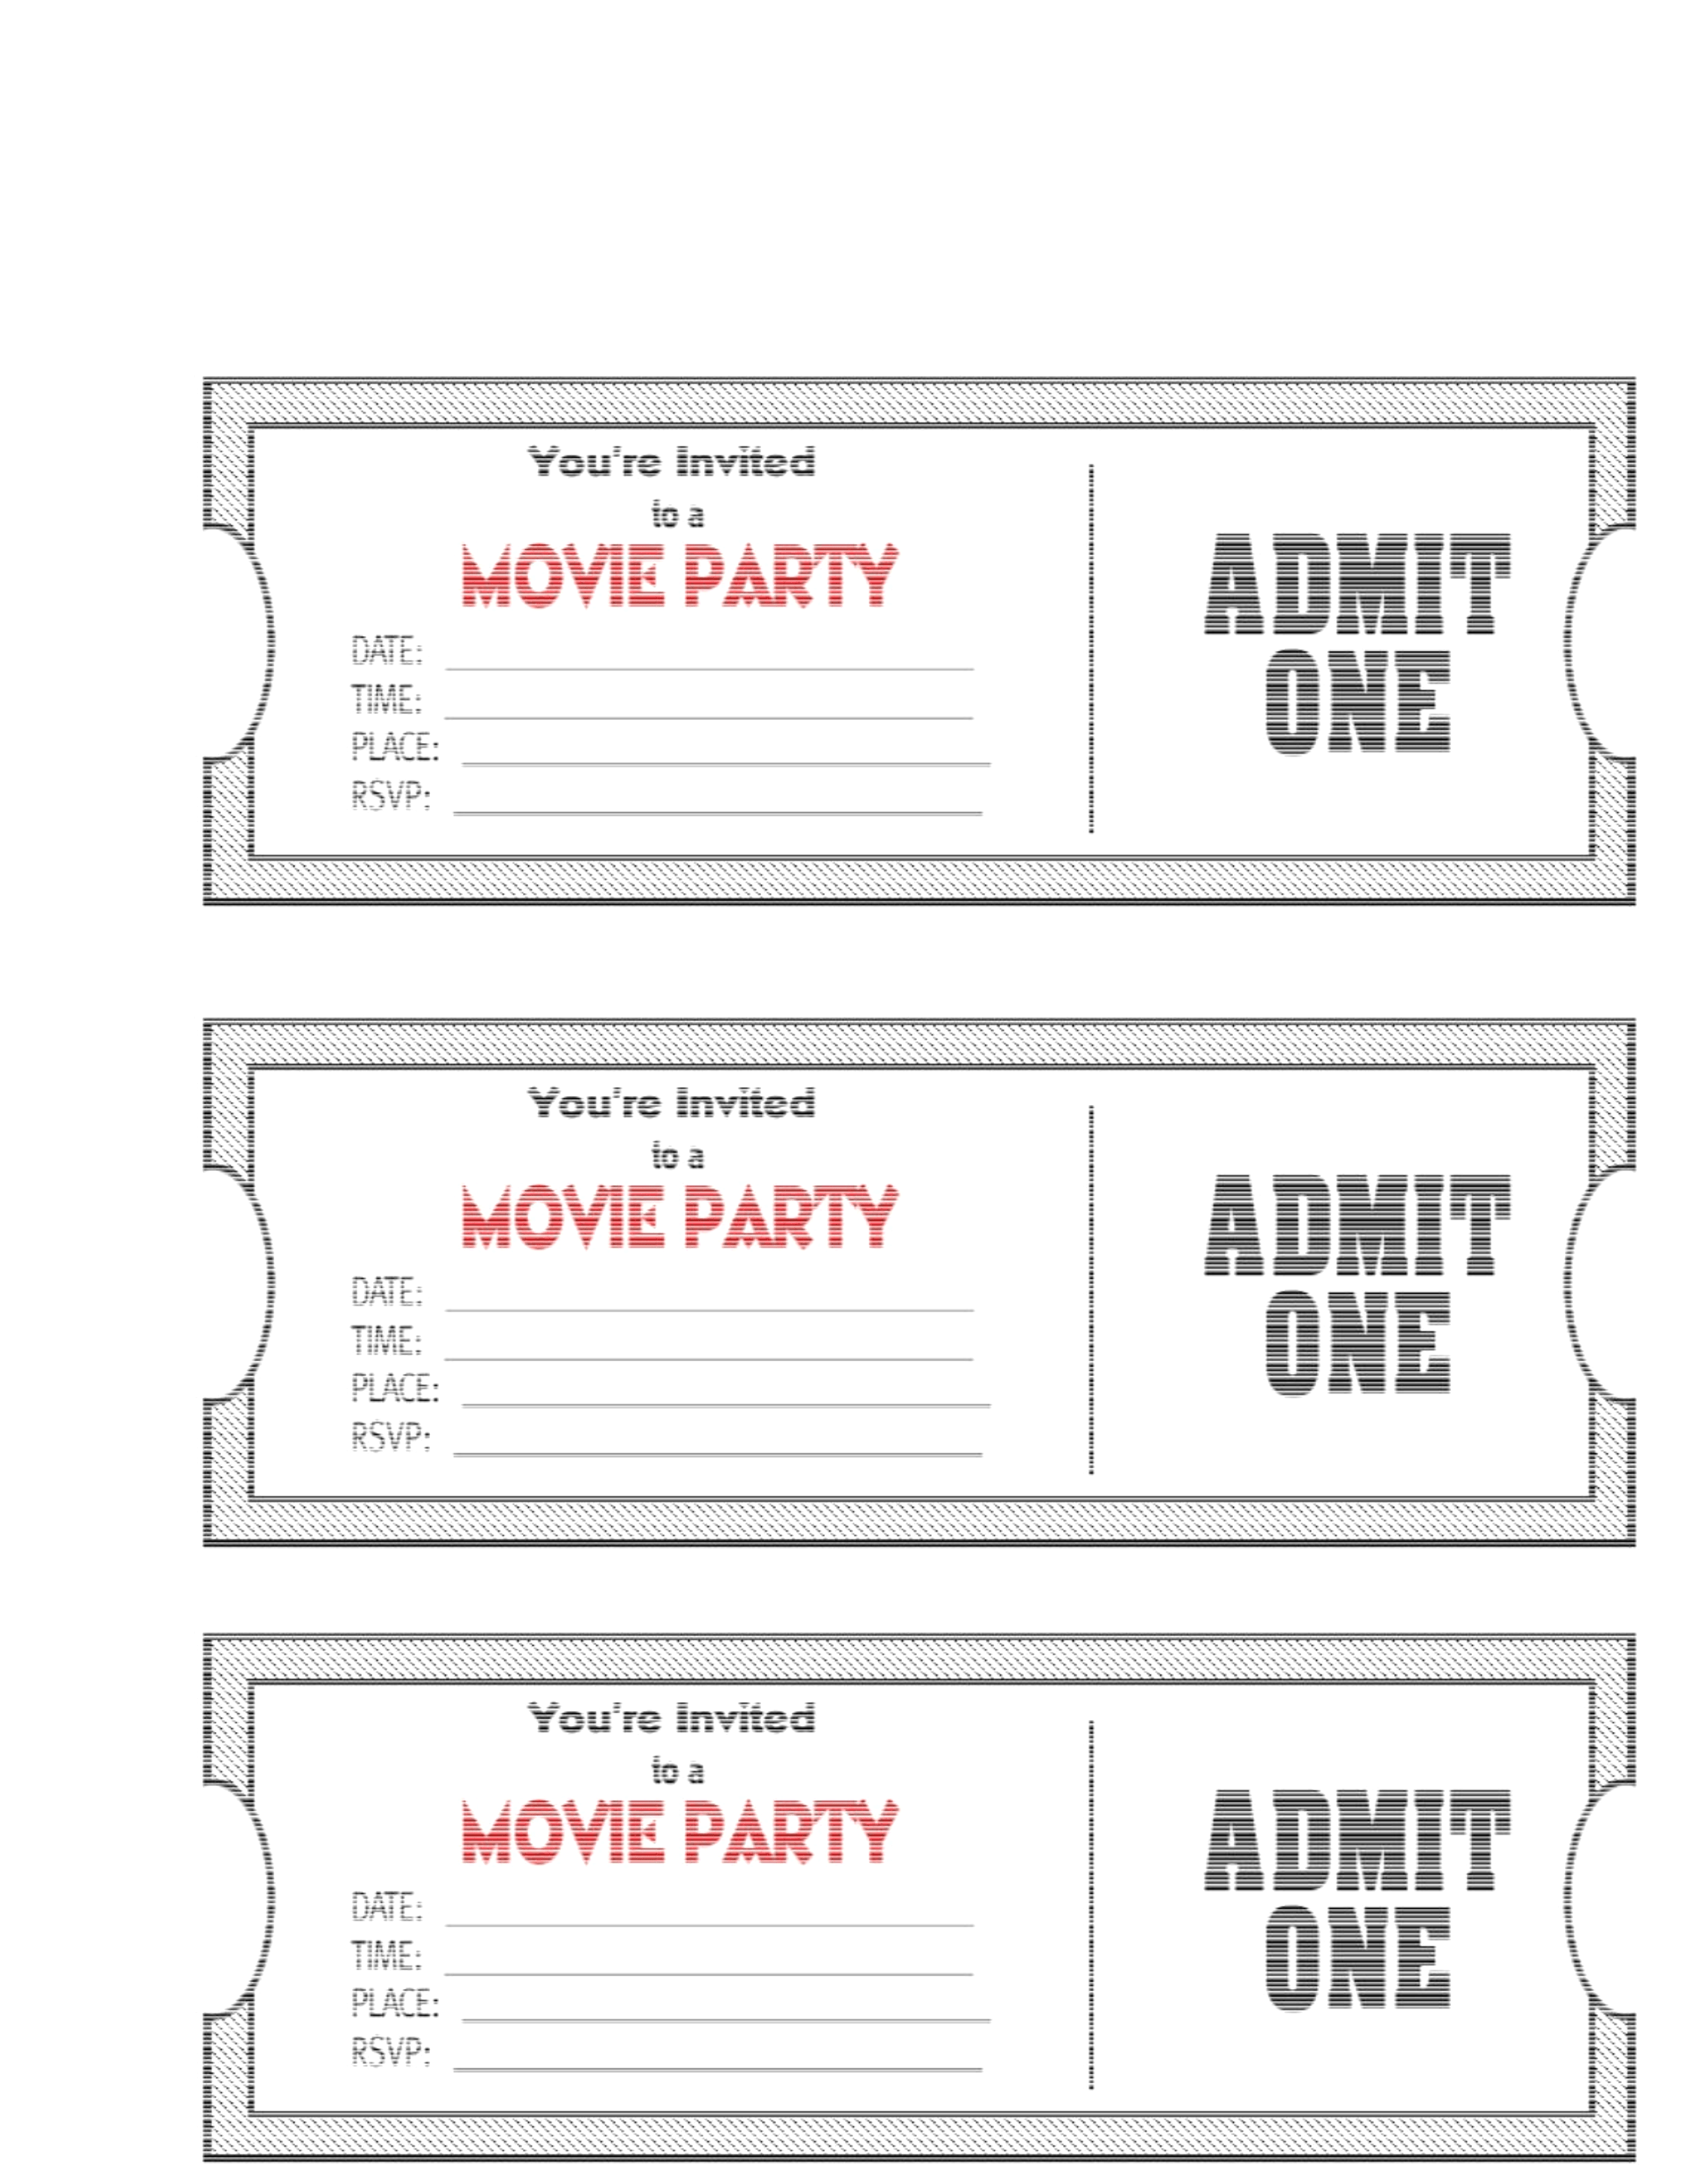 Invitation ticket template copy. Barcode clipart admit one